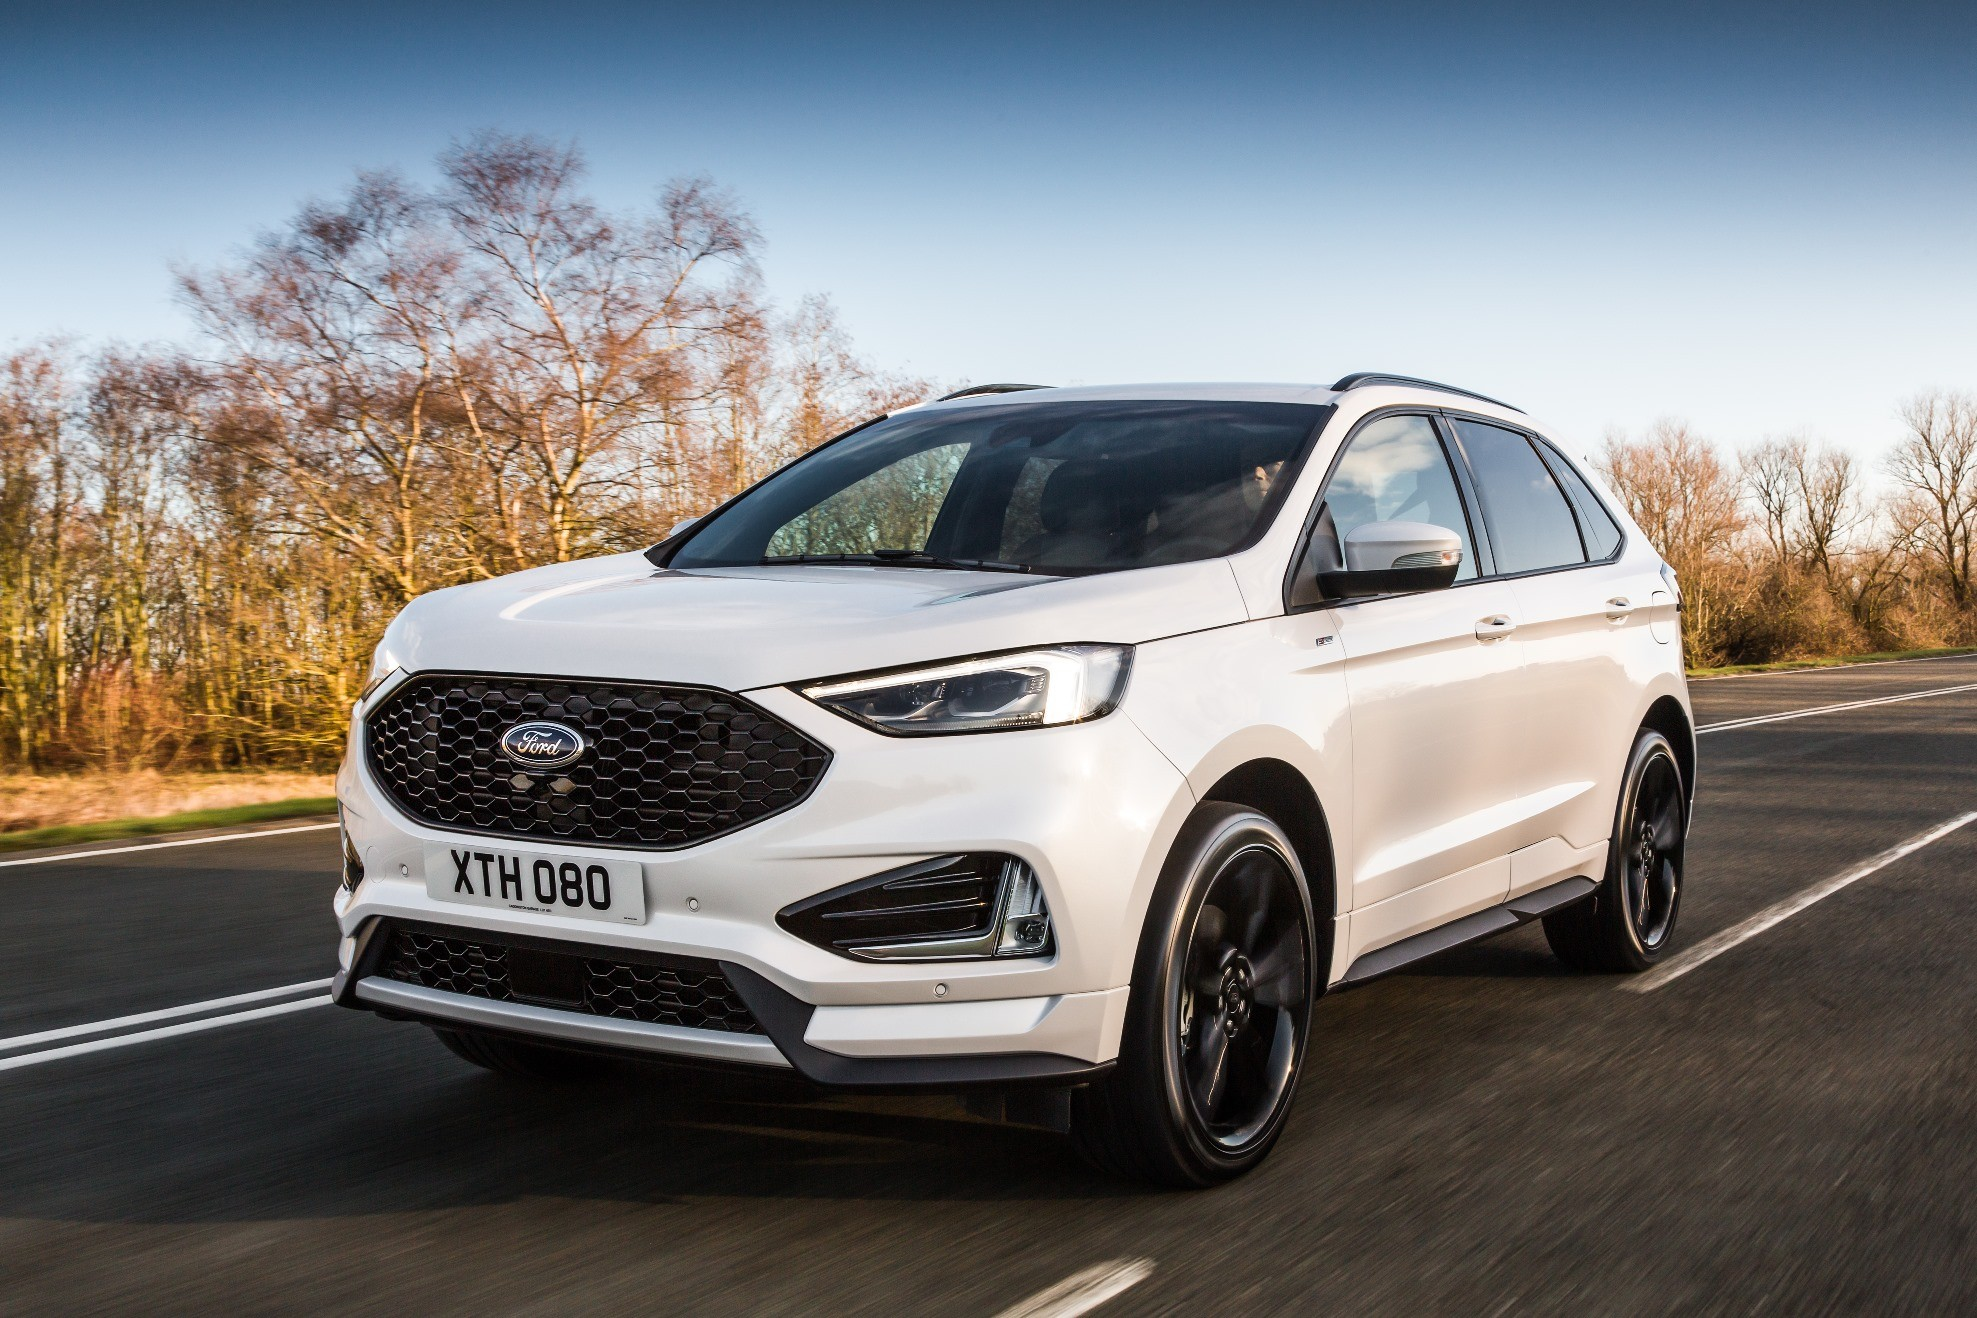 2019 Ford Edge Launched In Europe With EcoBlue Bi-Turbo Diesel - autoevolution